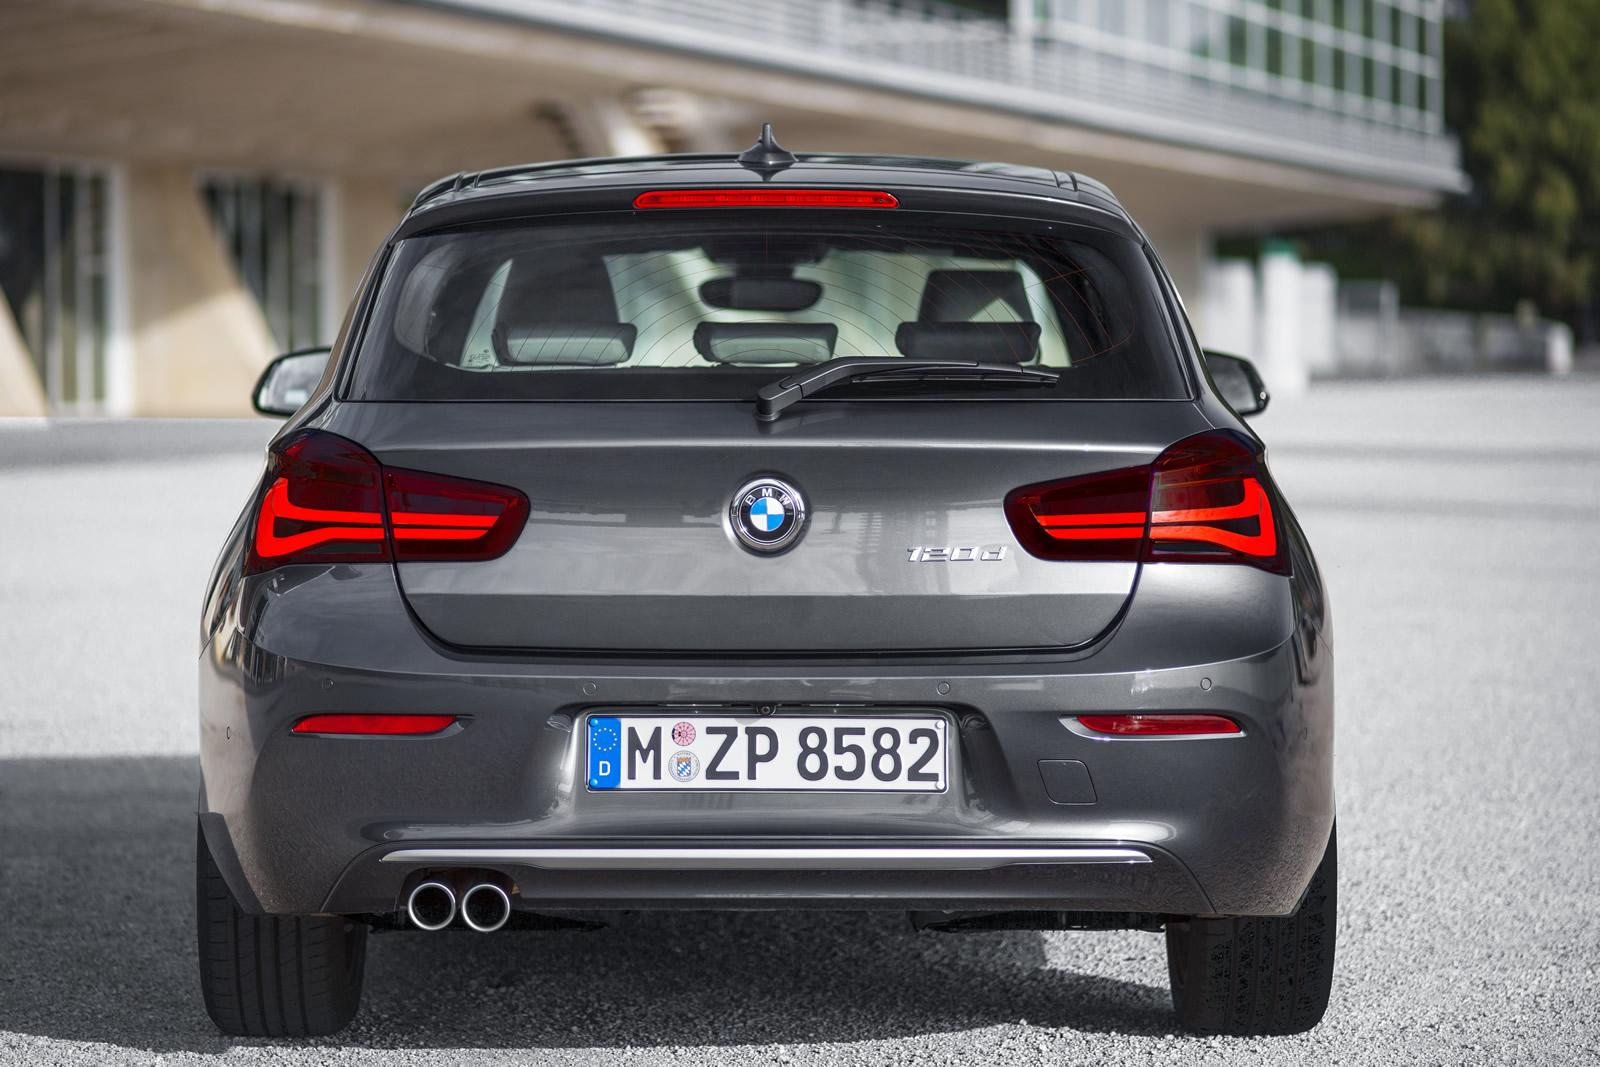 2016 Bmw 1 Series Facelift Revealed Ahead Of Geneva Show